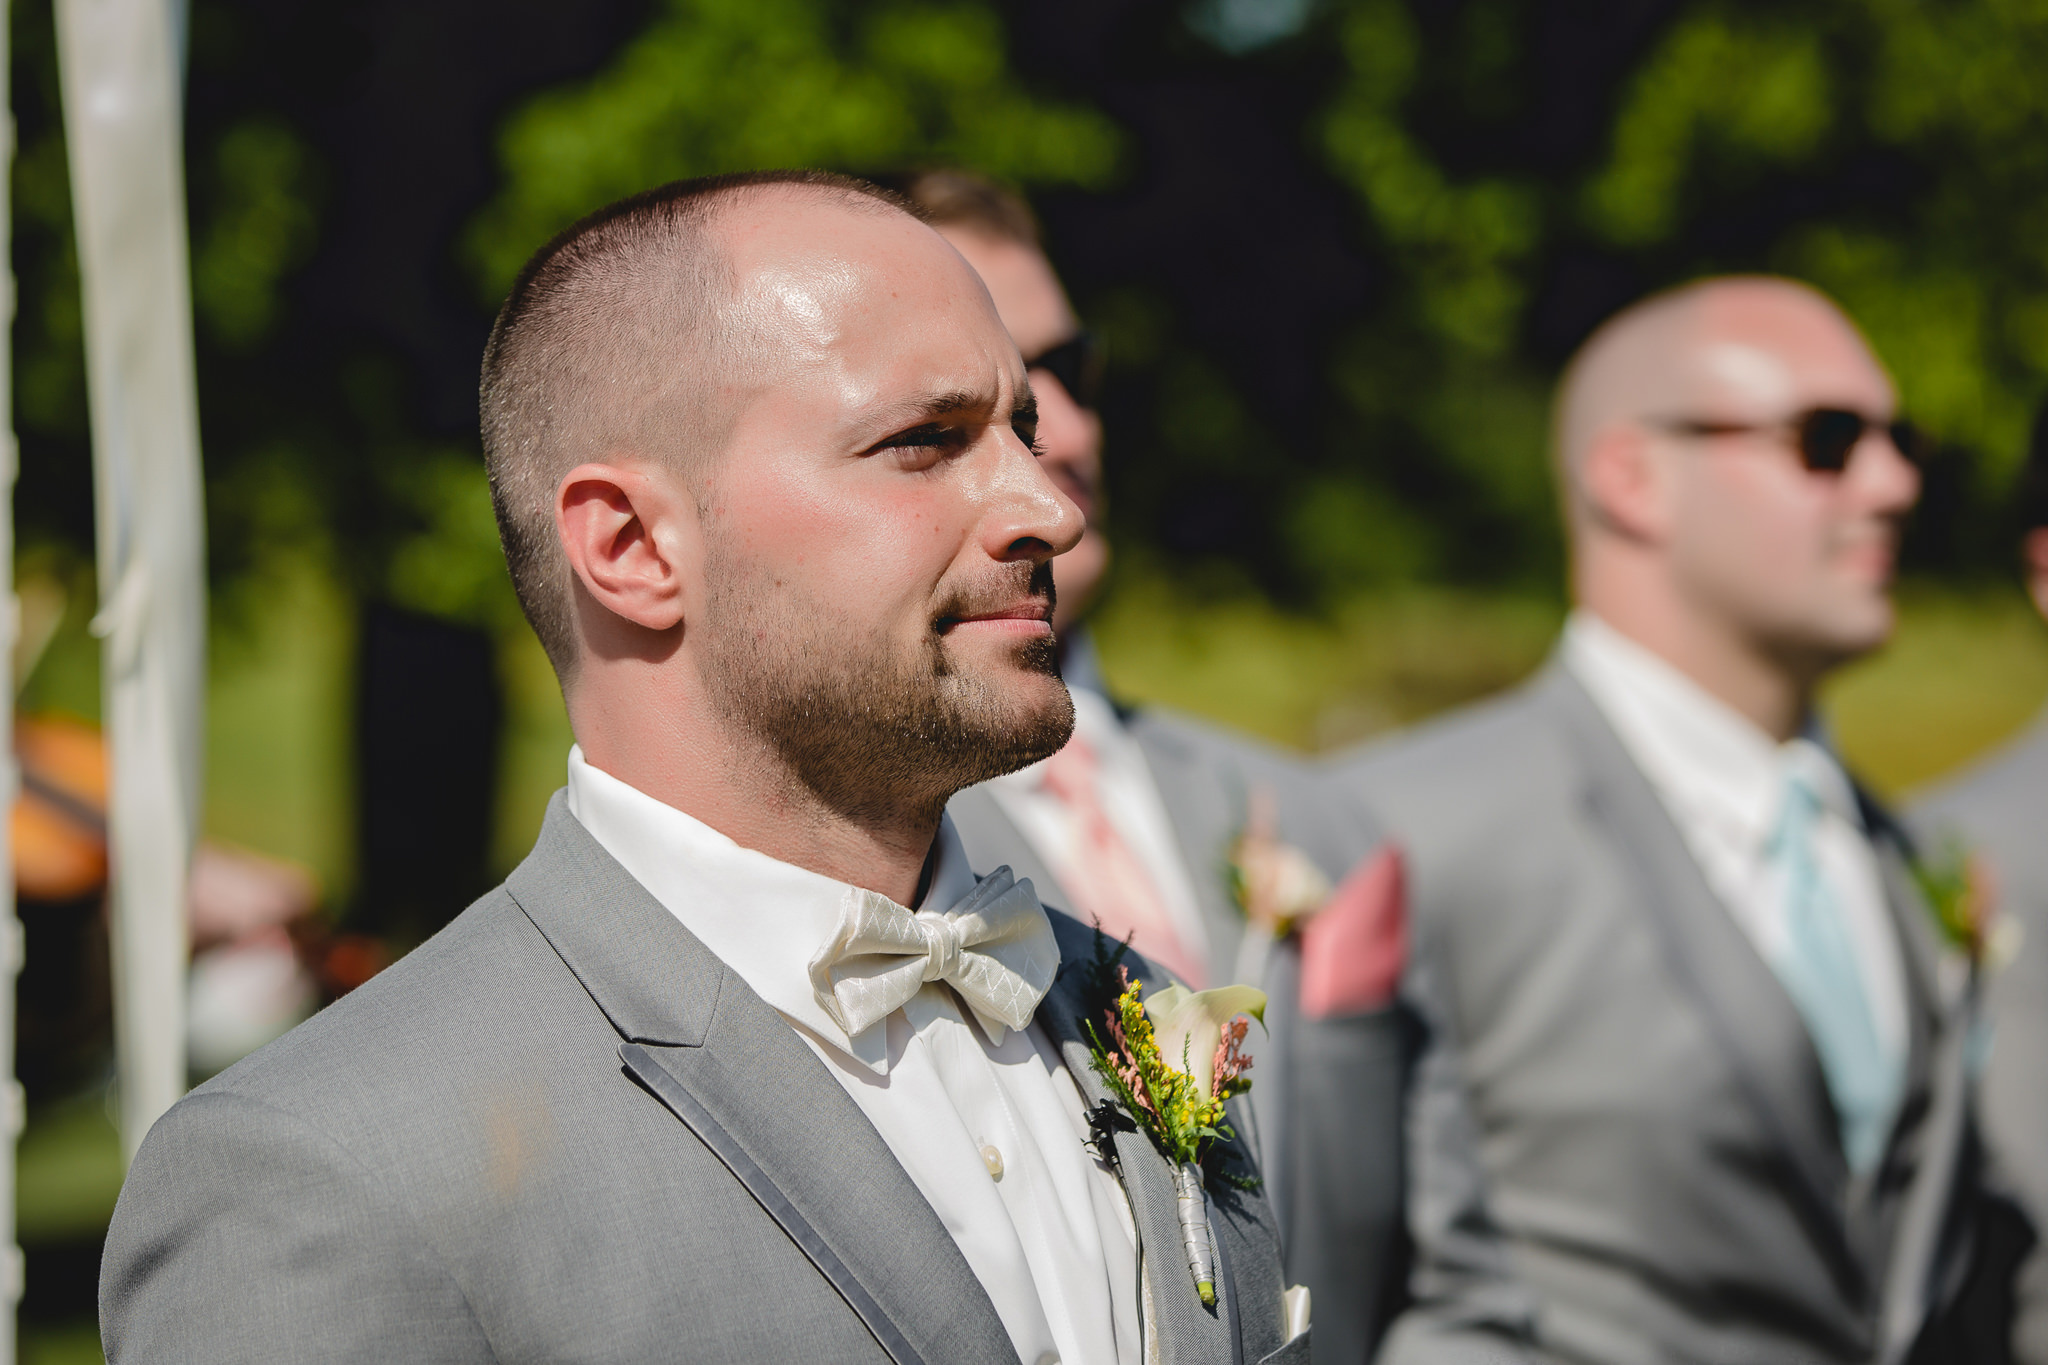 Groom's reaction to seeing his bride for the first time